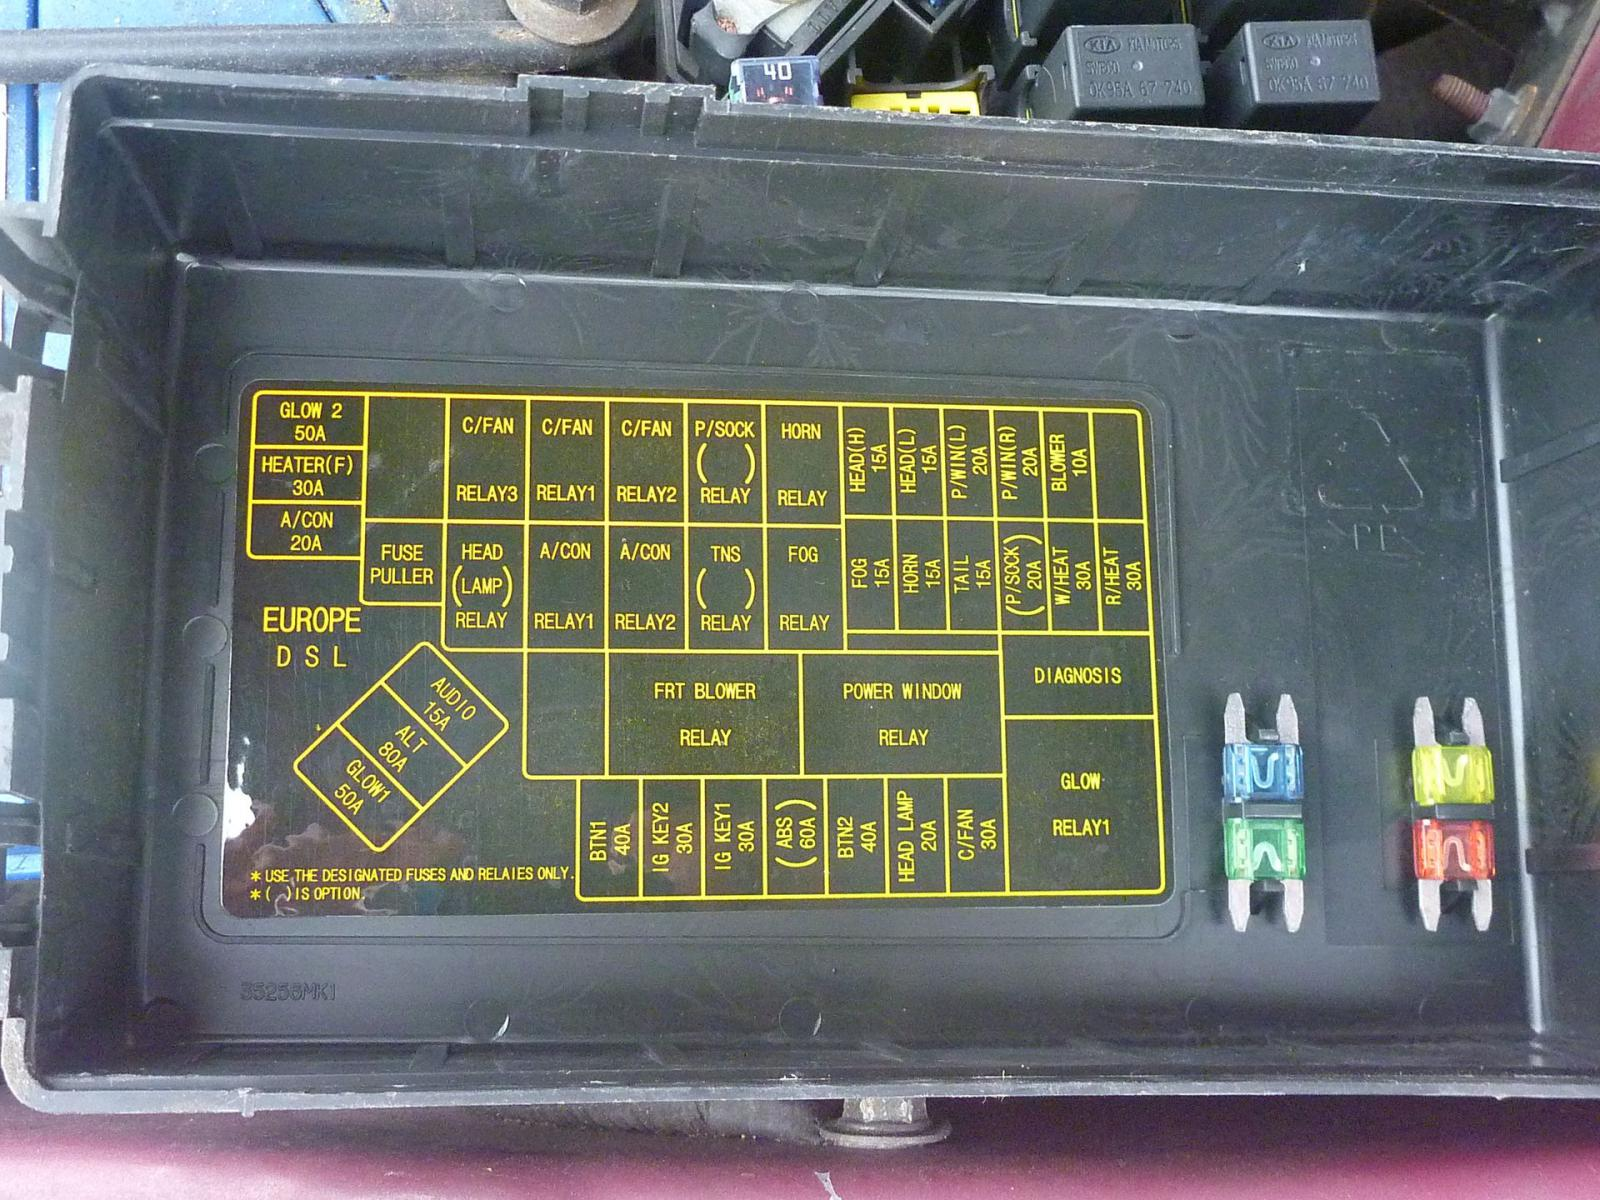 35826d1421936351 windscreen wipers windows blower do not fuse relays lid windscreen wipers, windows & blower do not work kia forum 2013 Kia Soul Wiring-Diagram at fashall.co